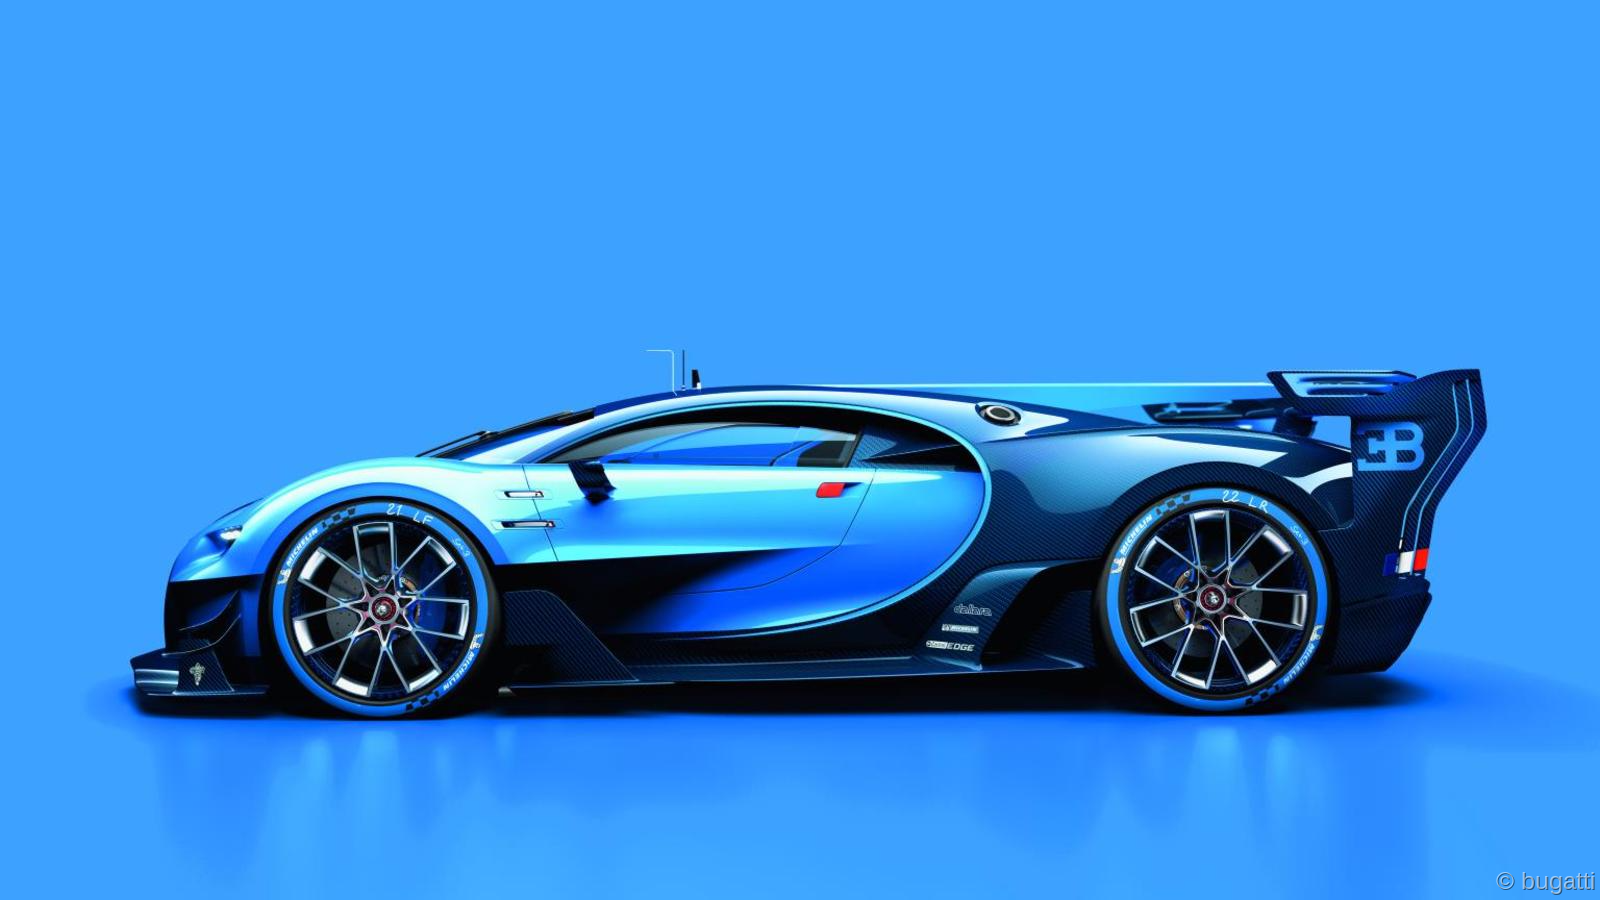 Bugatti Reveals Vision Gran Turismo, Every Other Car Now Looks ... on mitsubishi gt vision, renault alpine gt vision, subaru viziv gt vision, bmw gt vision,